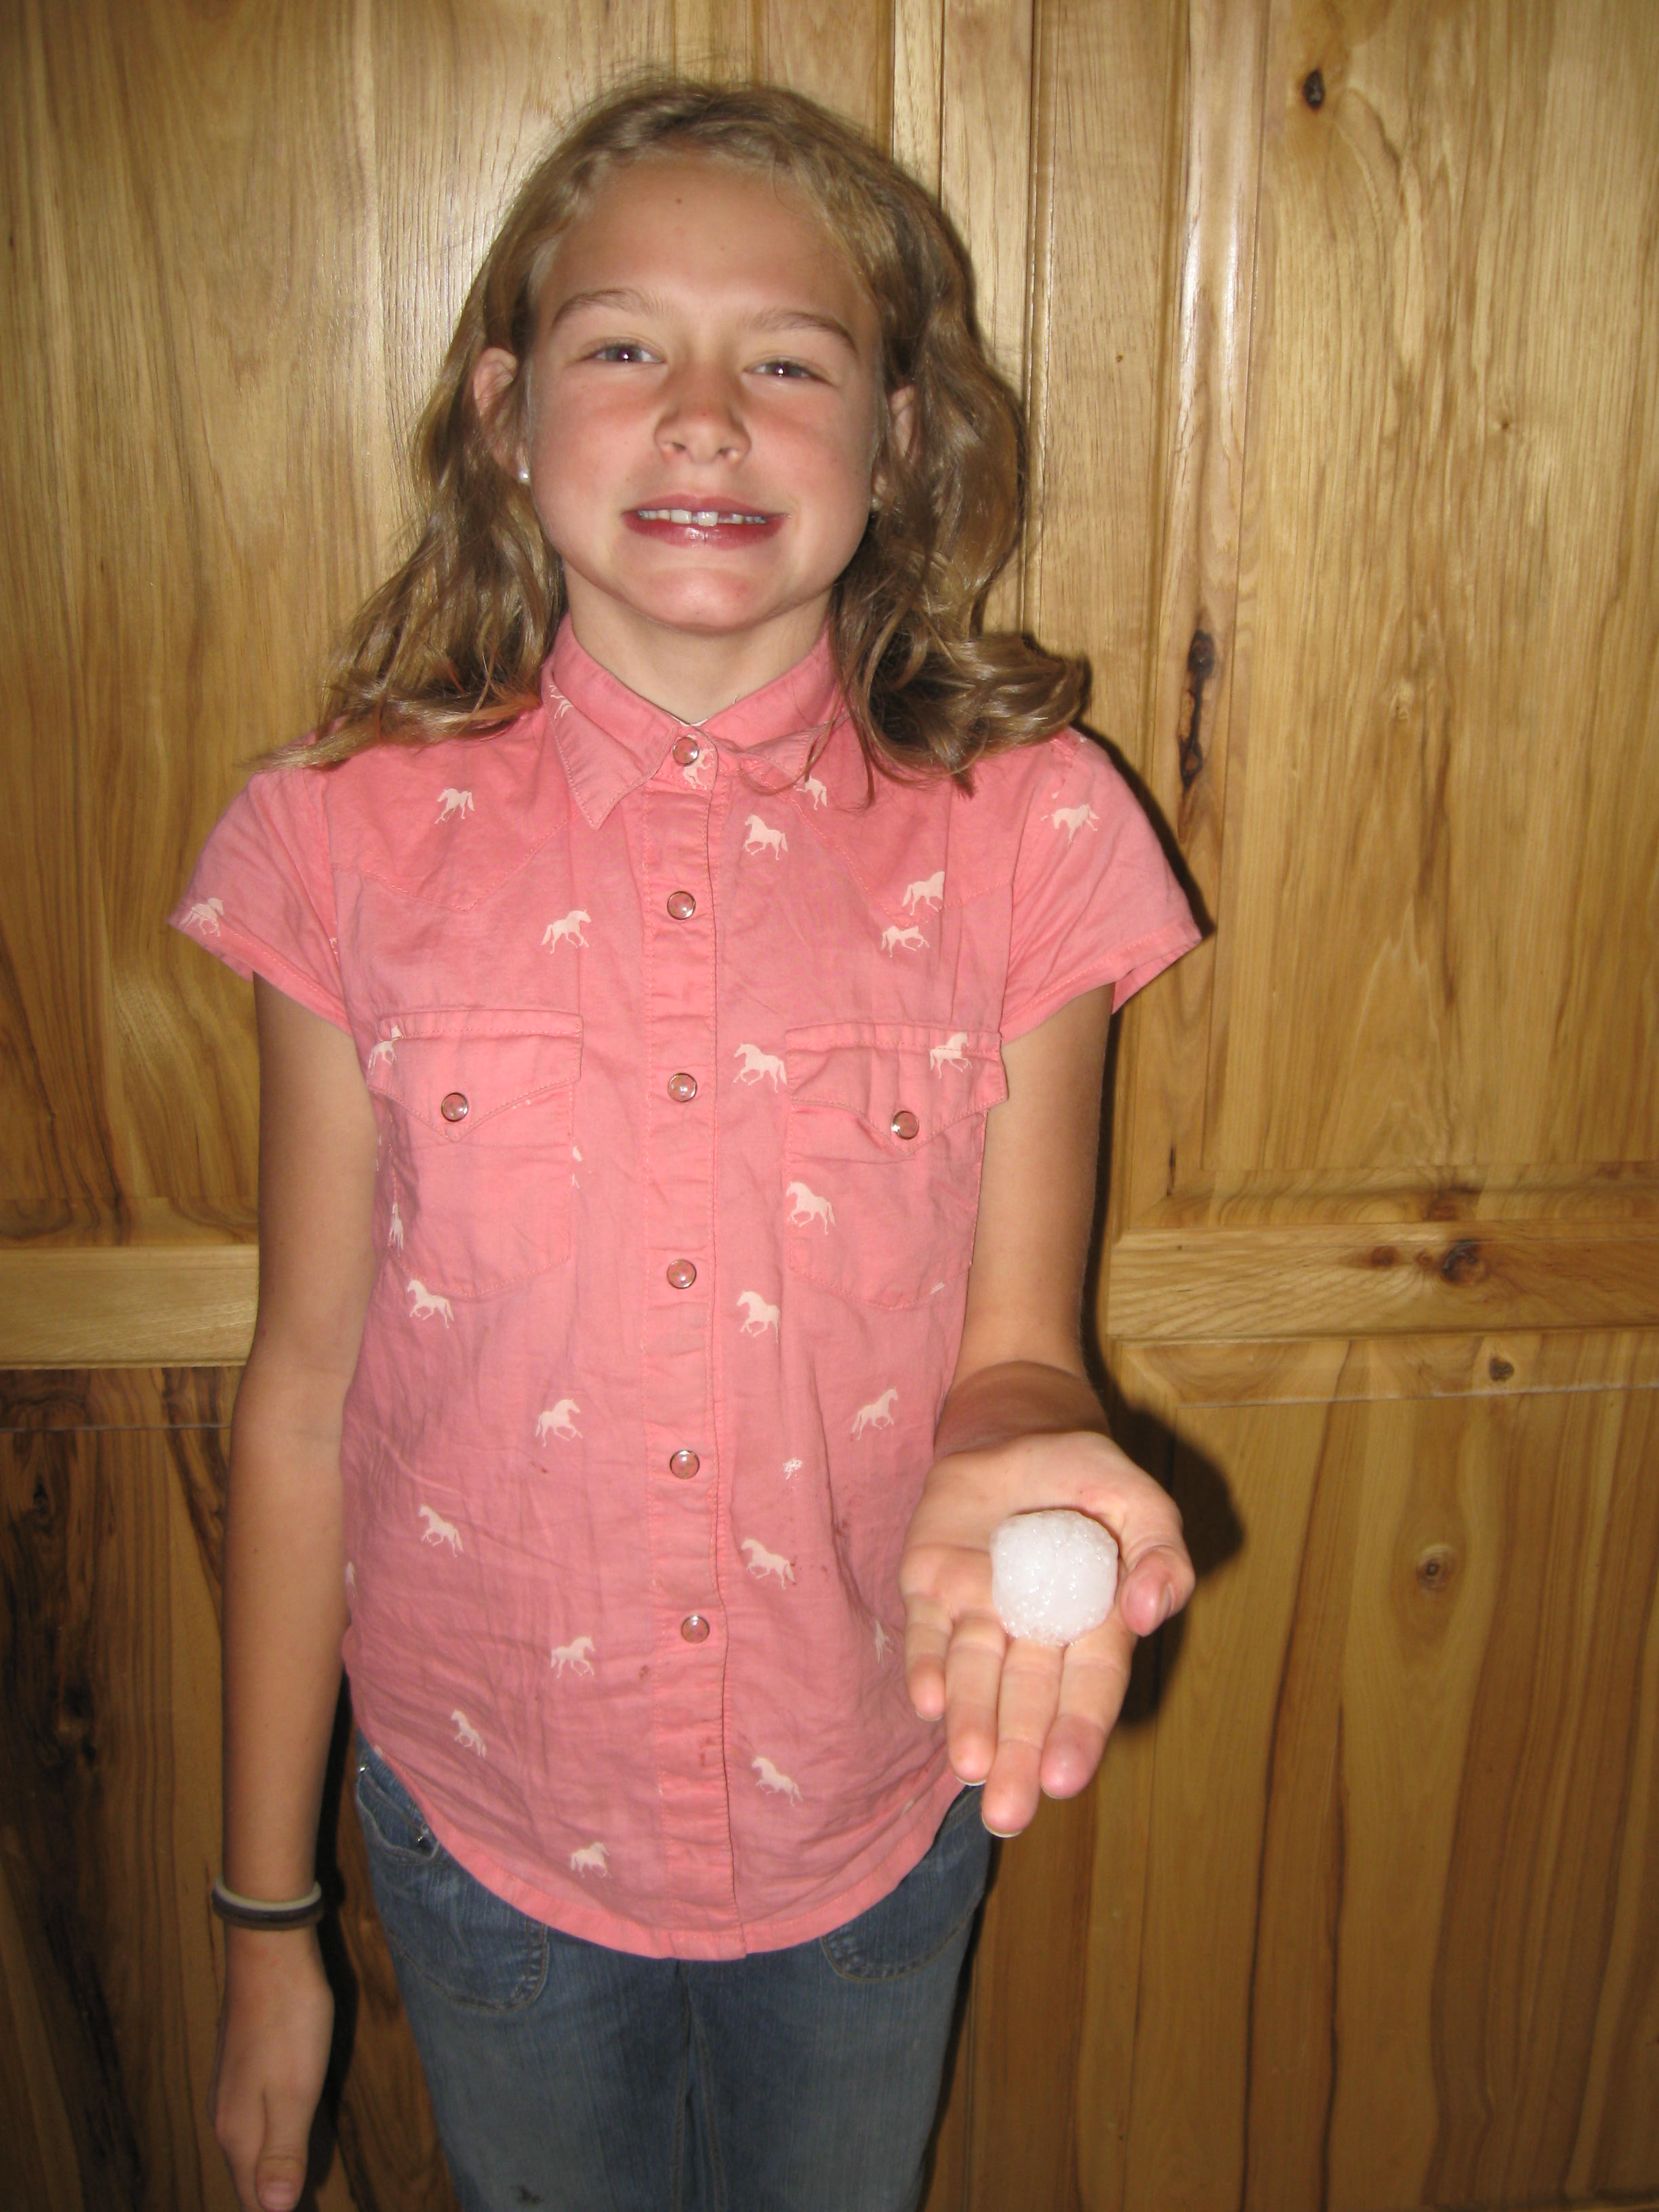 Our neighbor's daughter holding a hail stone